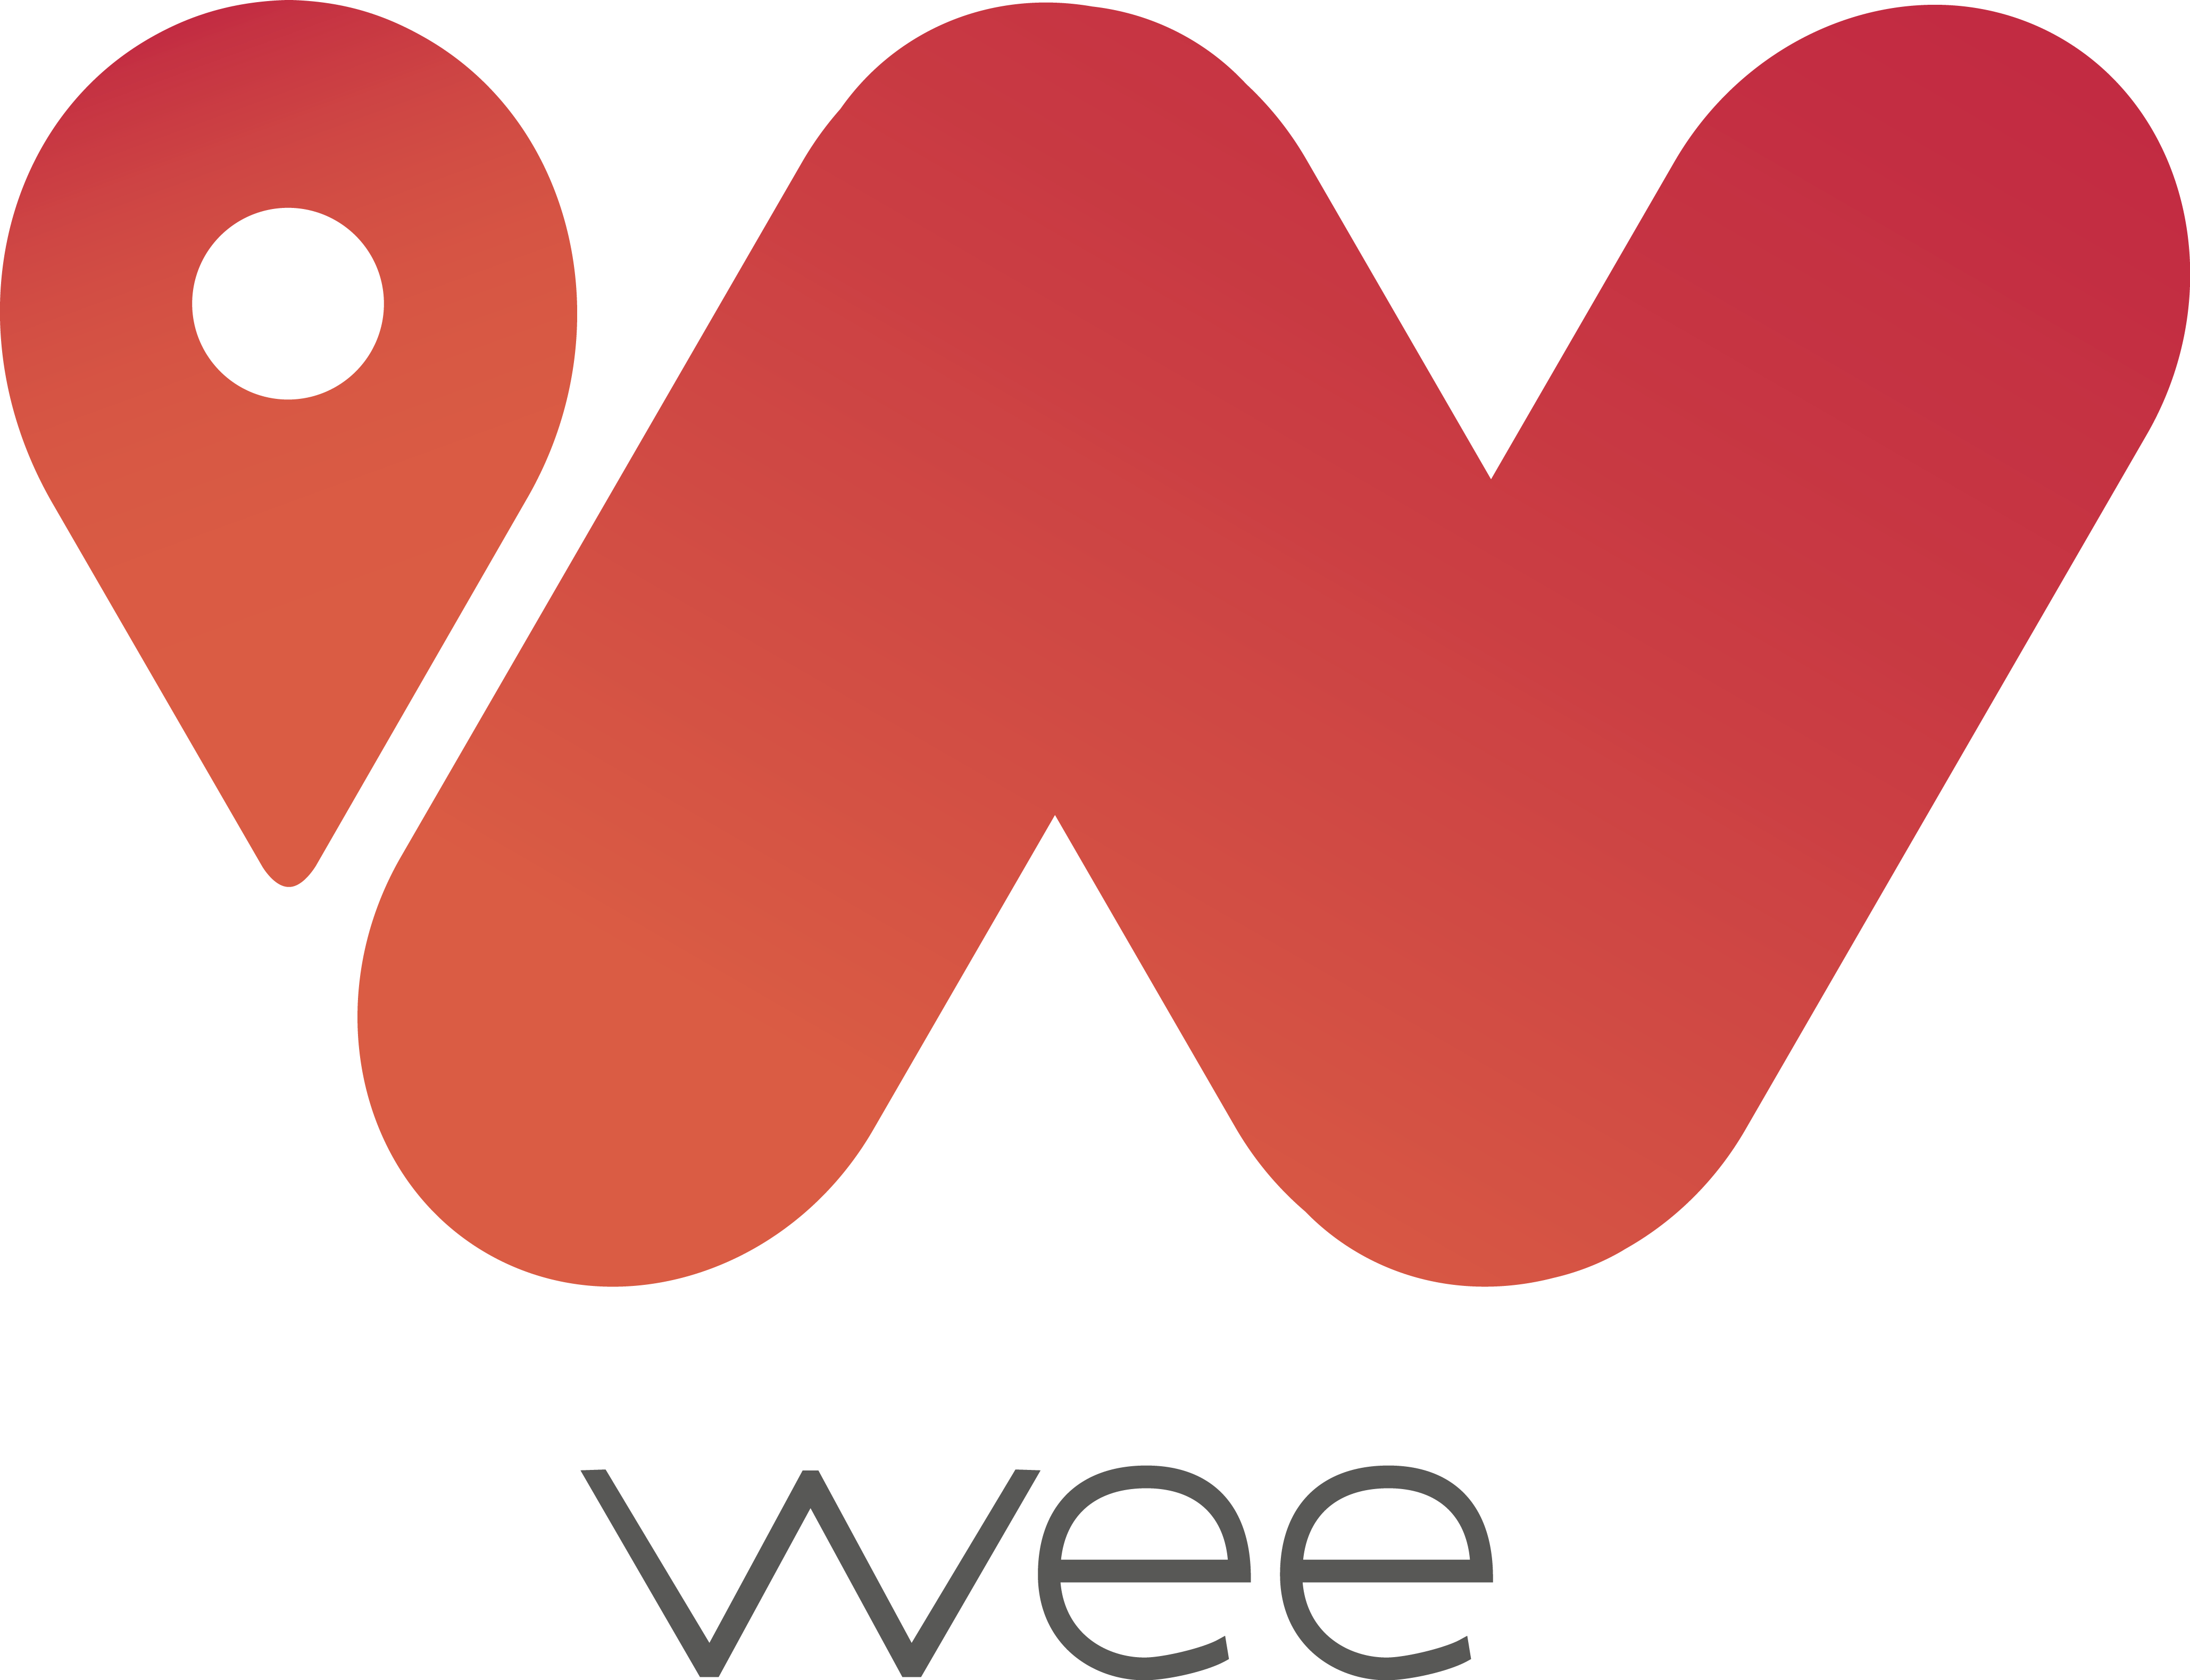 1476691827_58048773f40a3_wee_logo.png